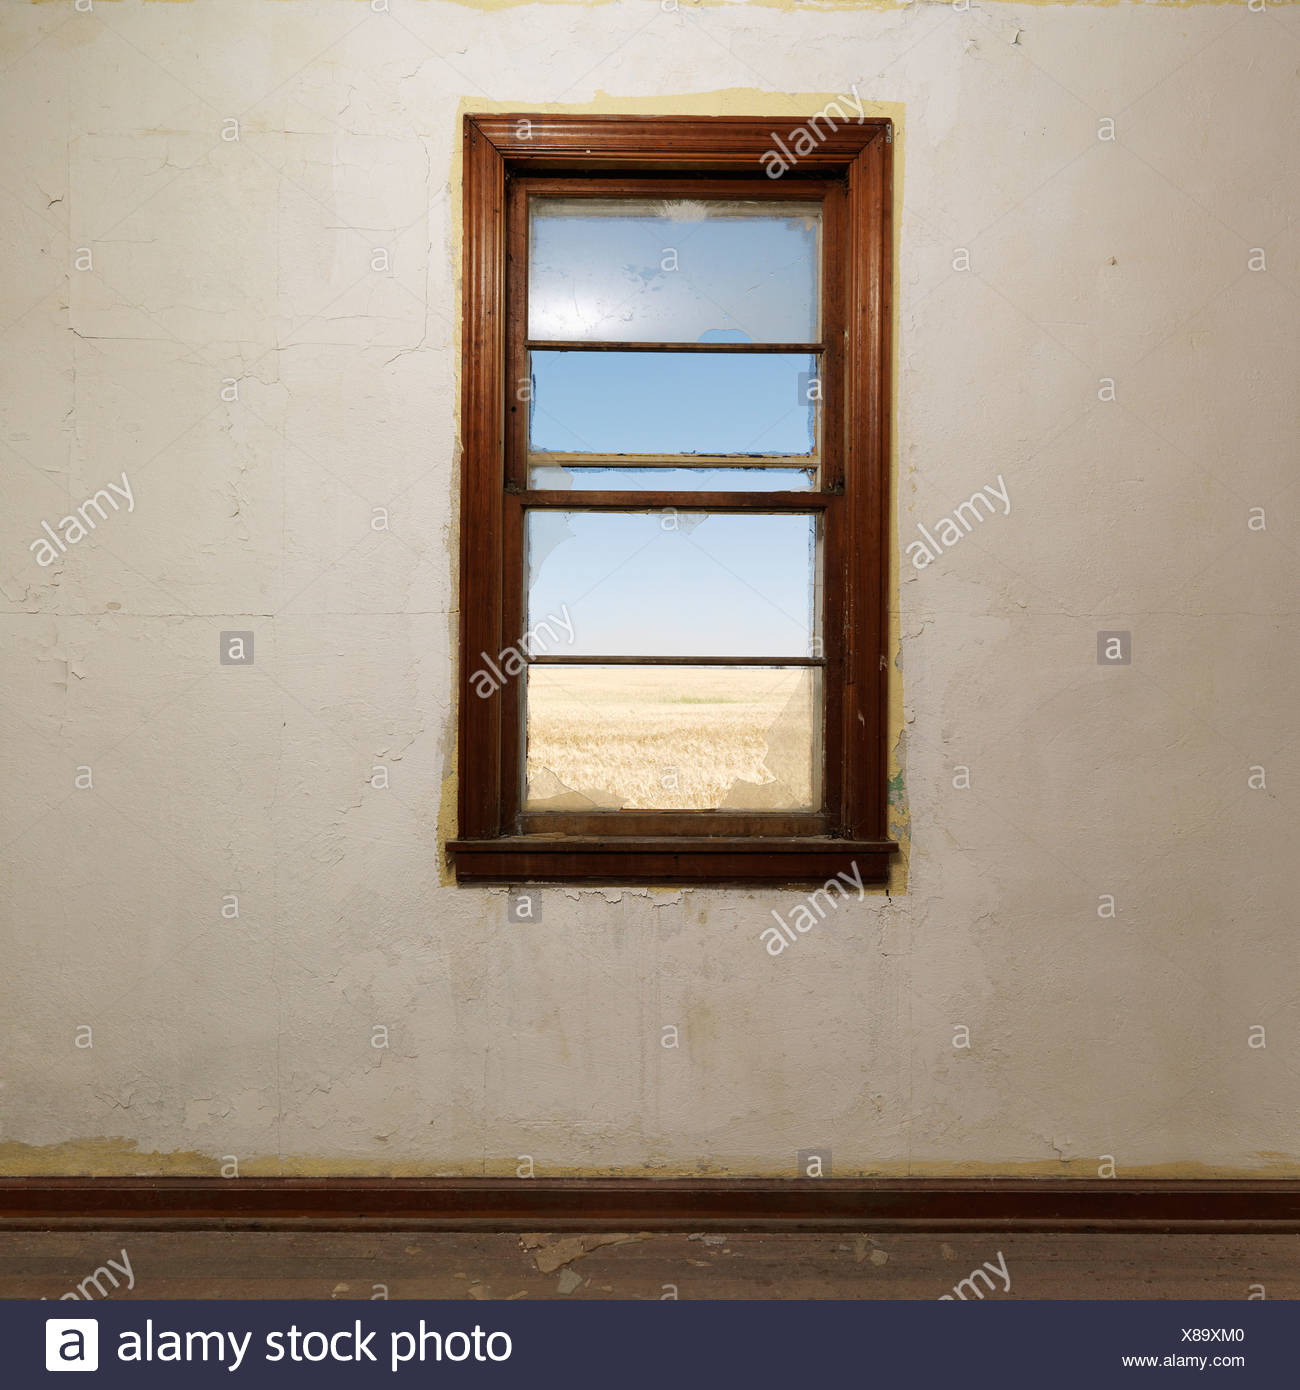 Empty abandoned room with widow centered on wall - Stock Image